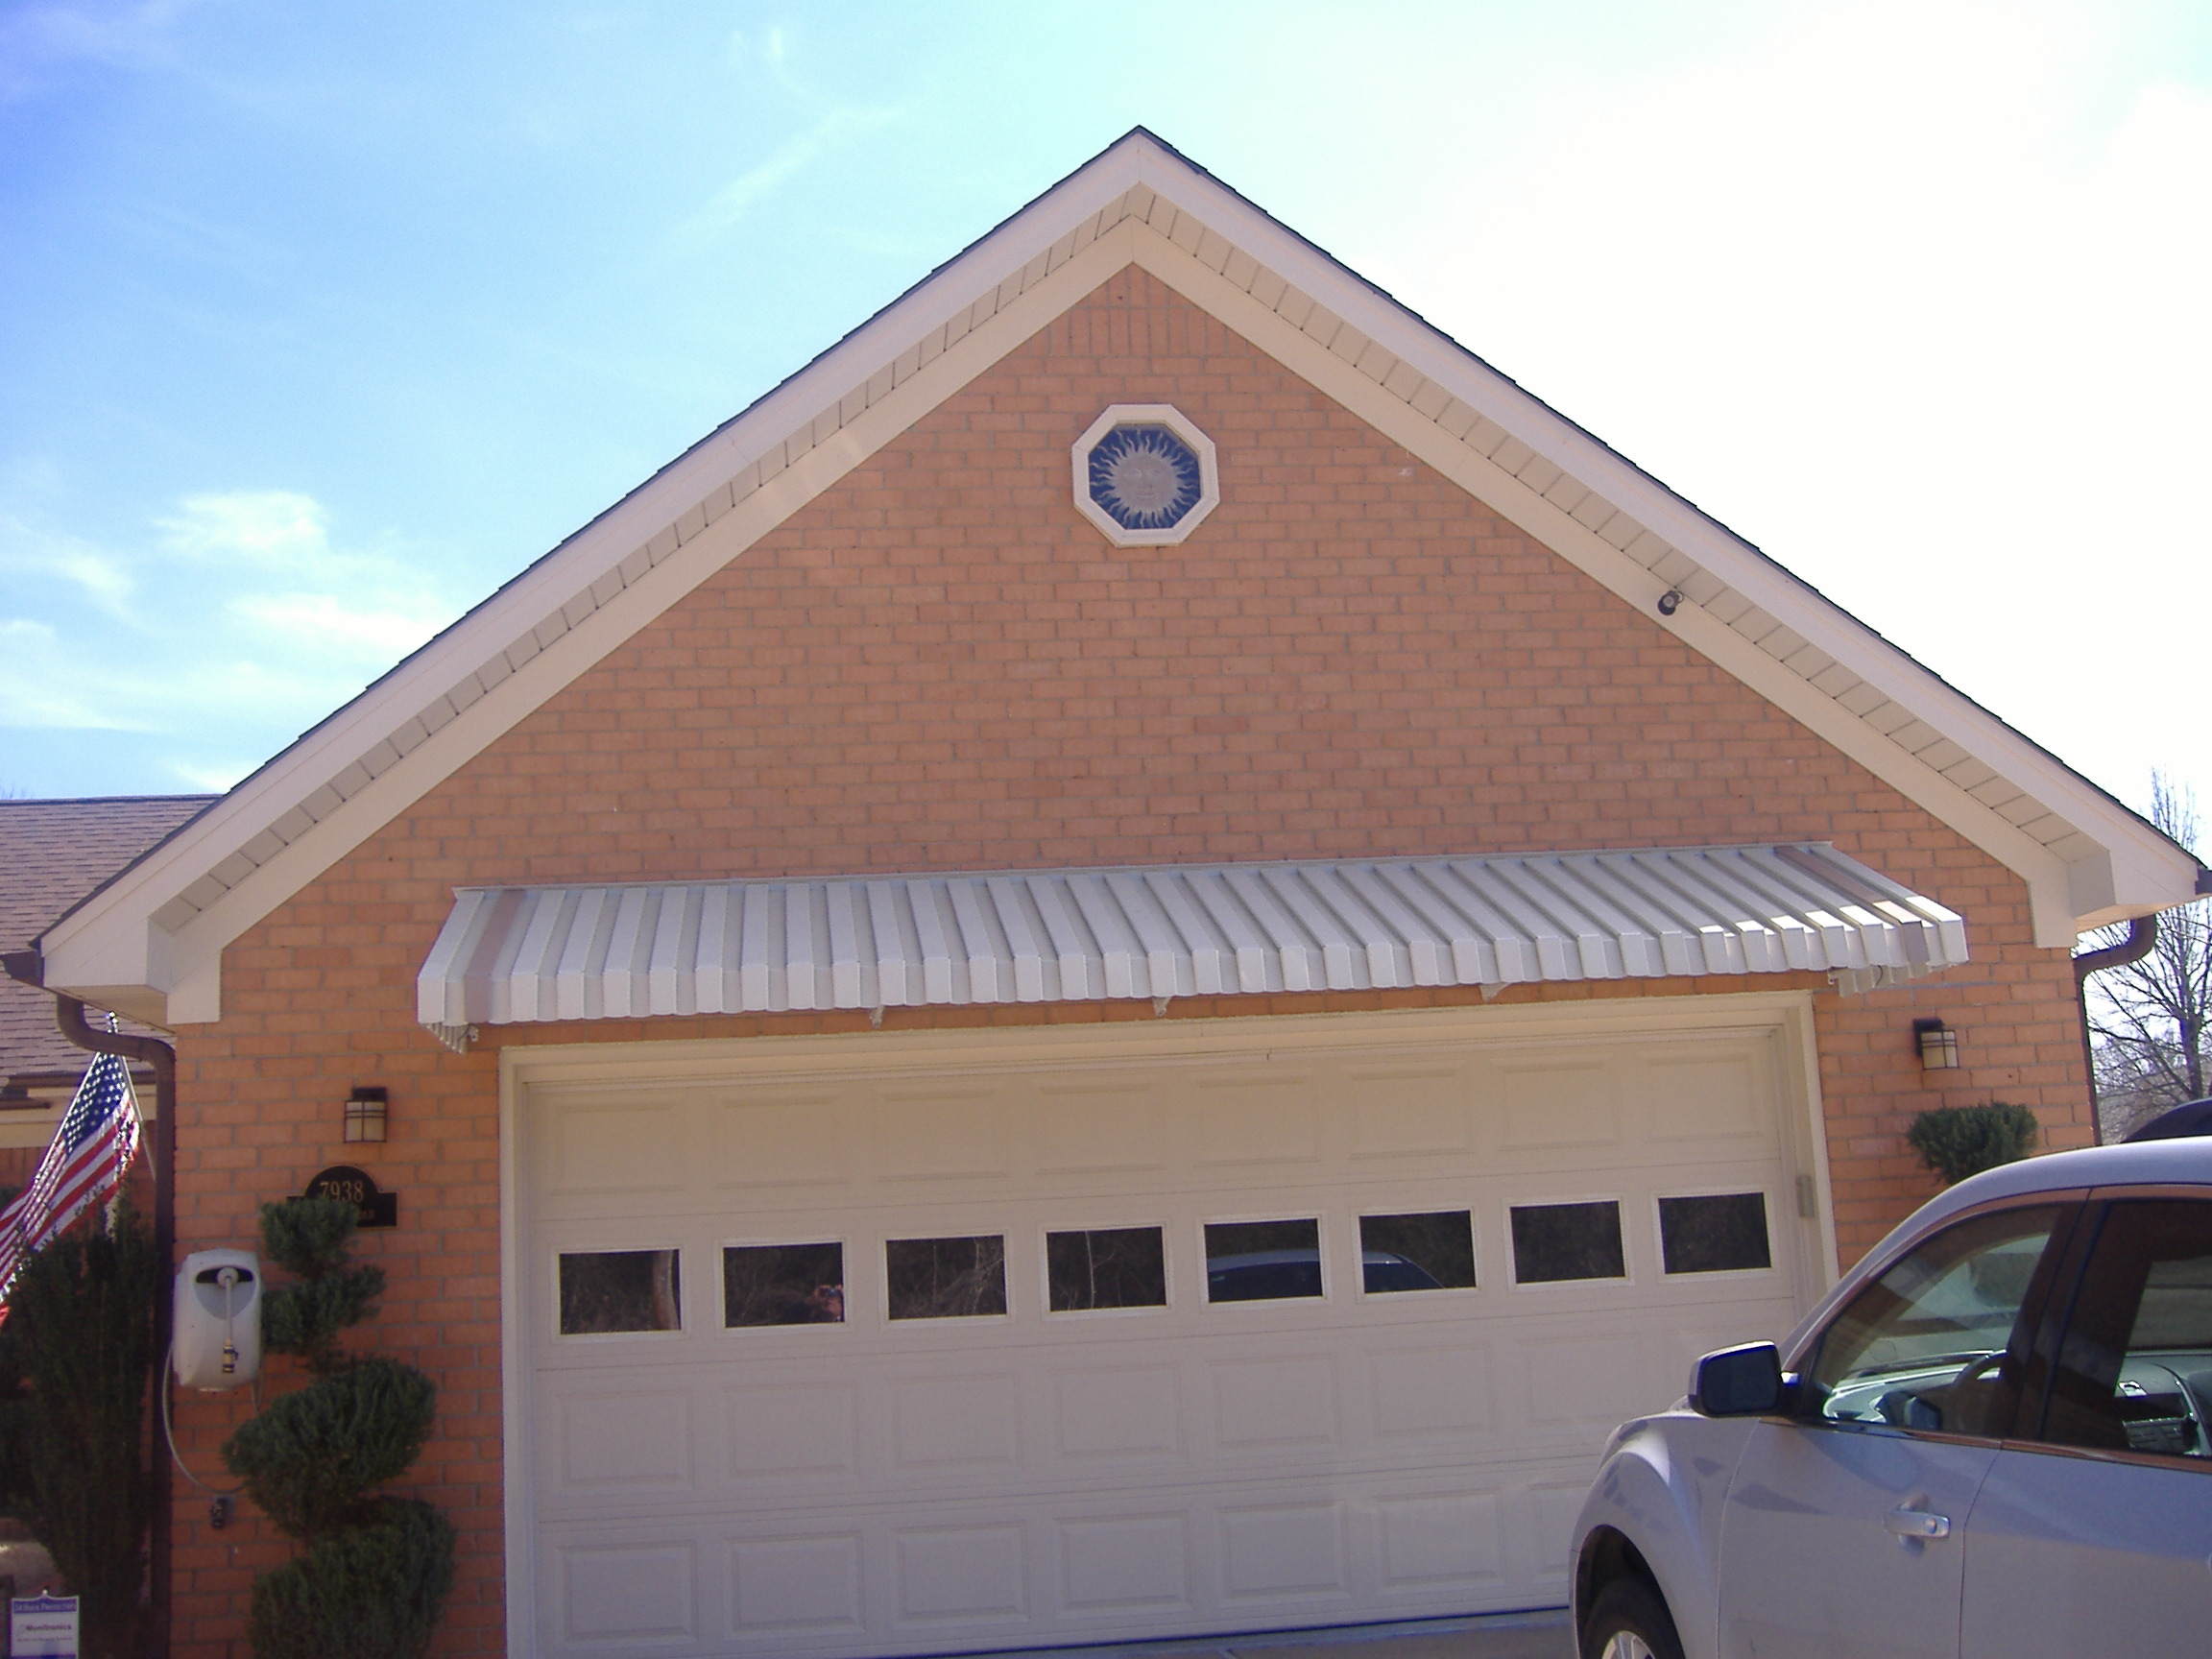 Door Awnings - Delta Tent & Awning Company